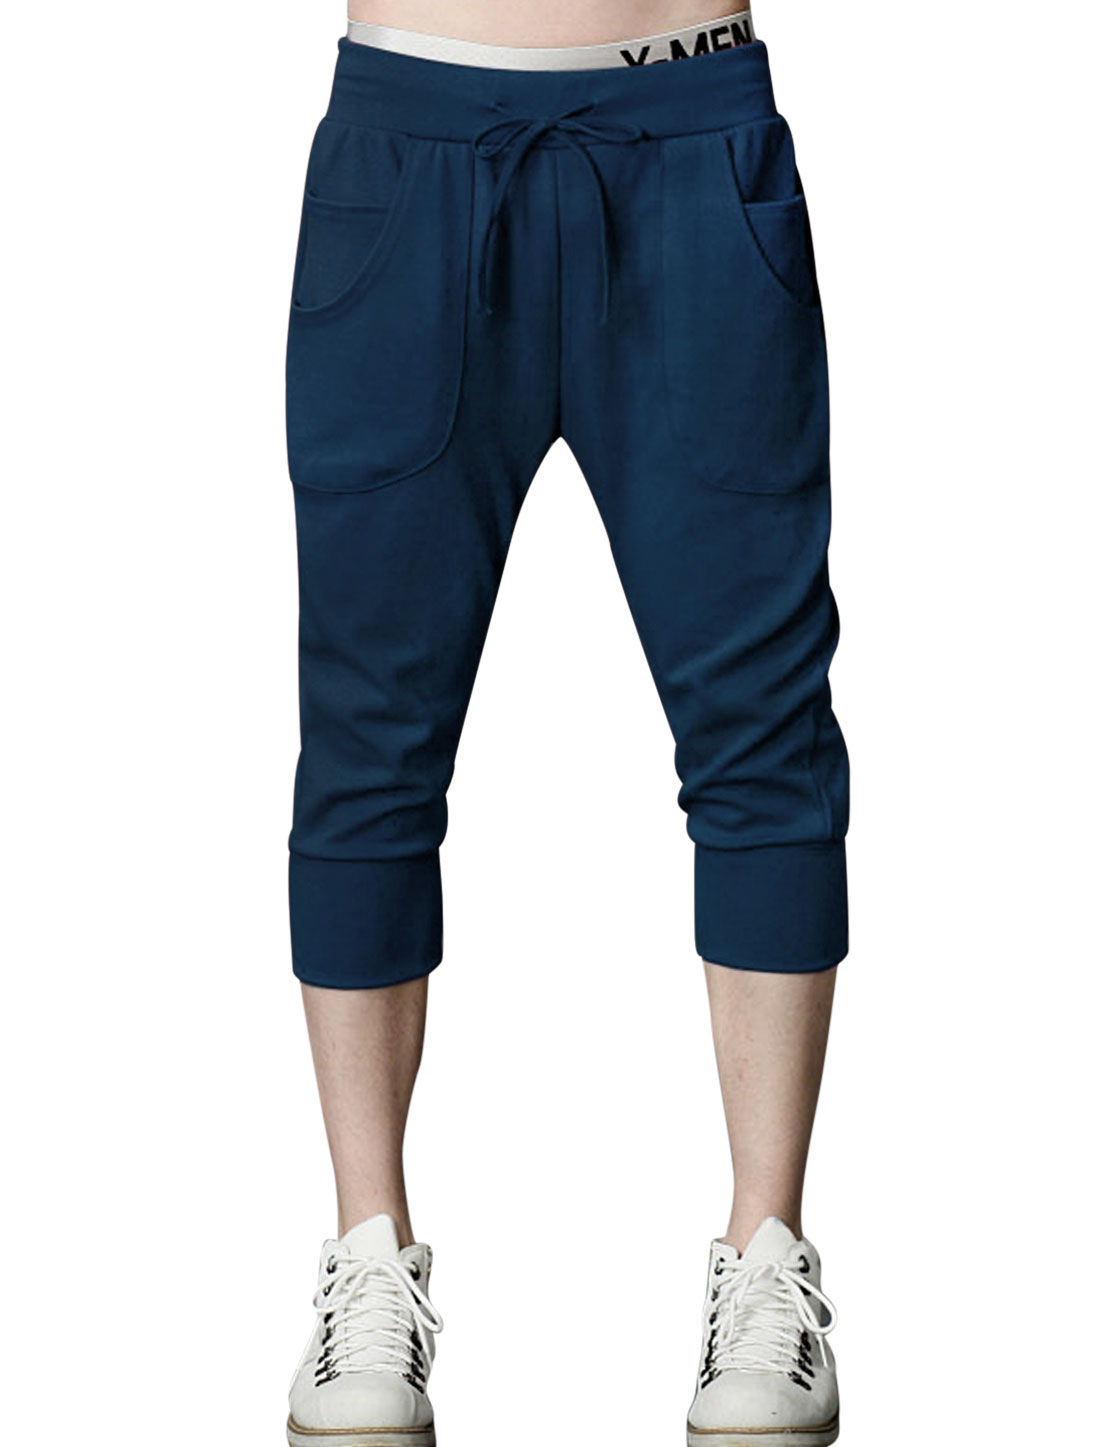 Men Elastic Waist with Drawstring Casual Sport Capris Navy Blue W30